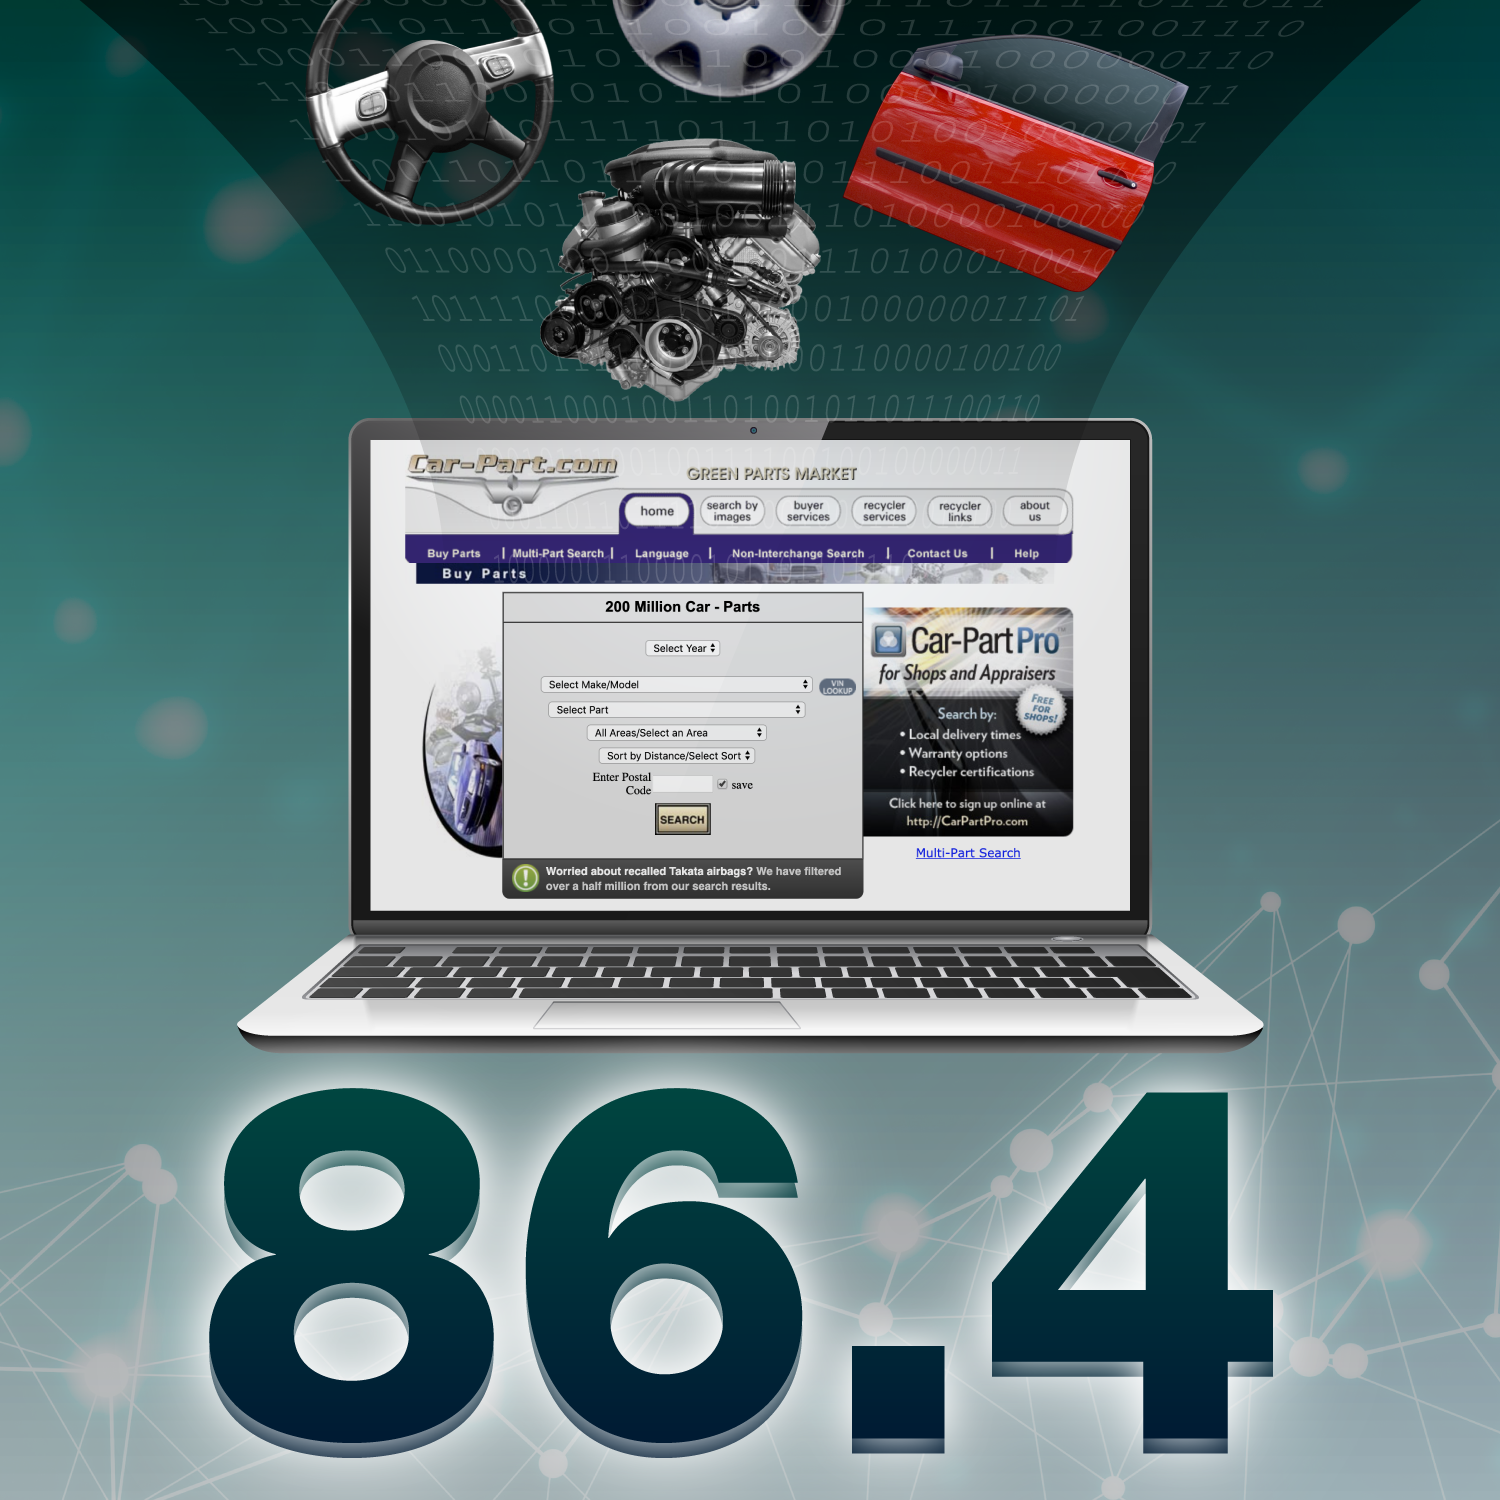 """Computer displaying the Car-Part.com website, and """"86.4"""" below it."""